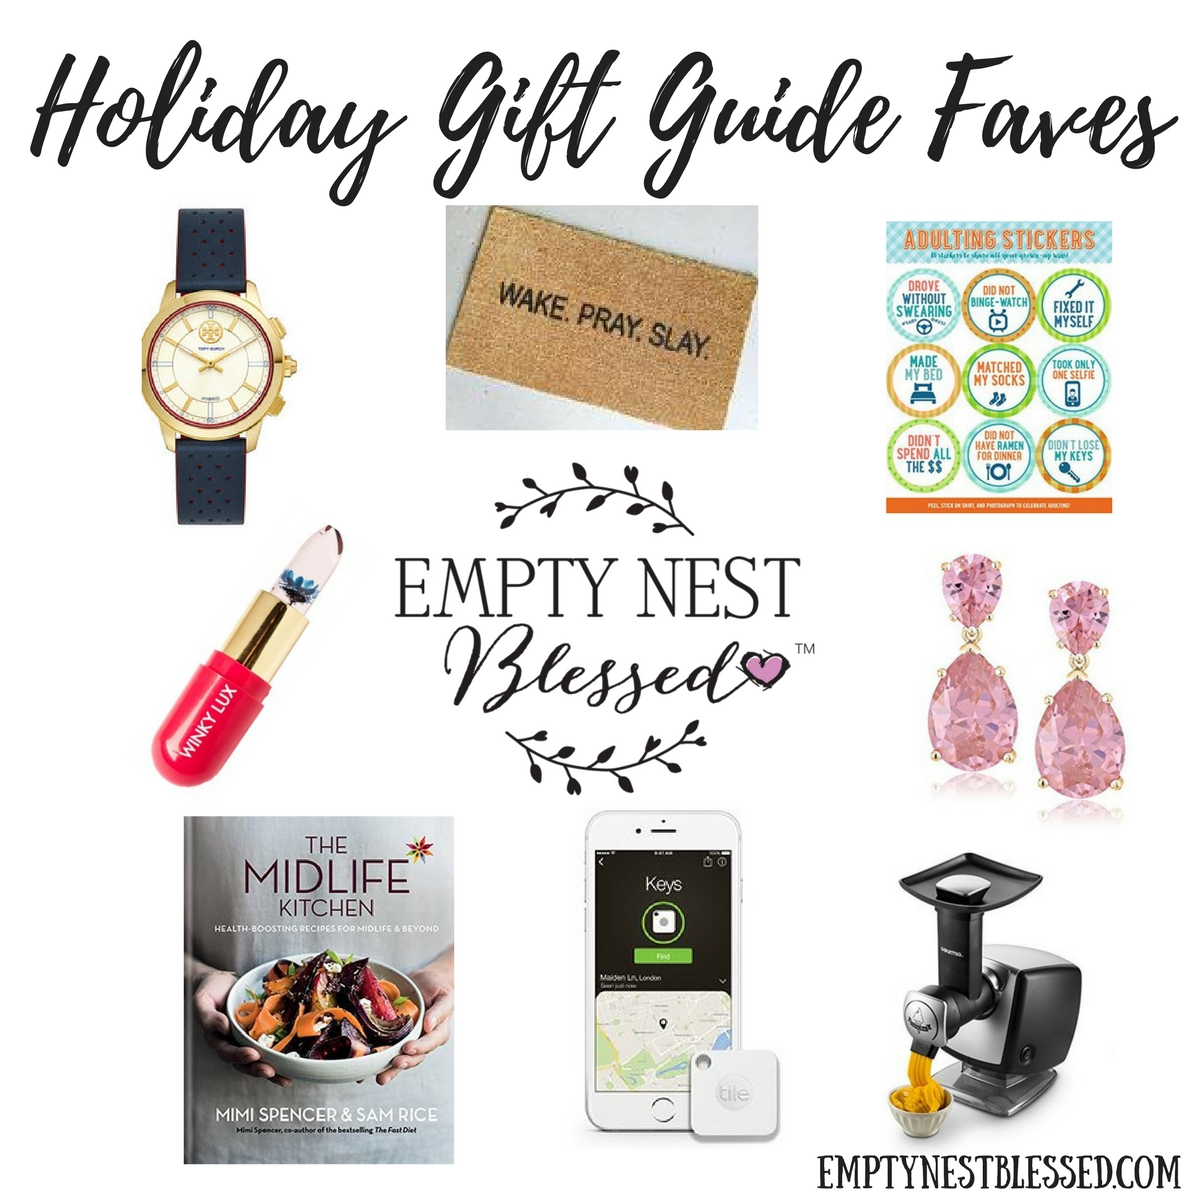 My Holiday Gift Guide Favorites (It Was Super Difficult to Choose!)